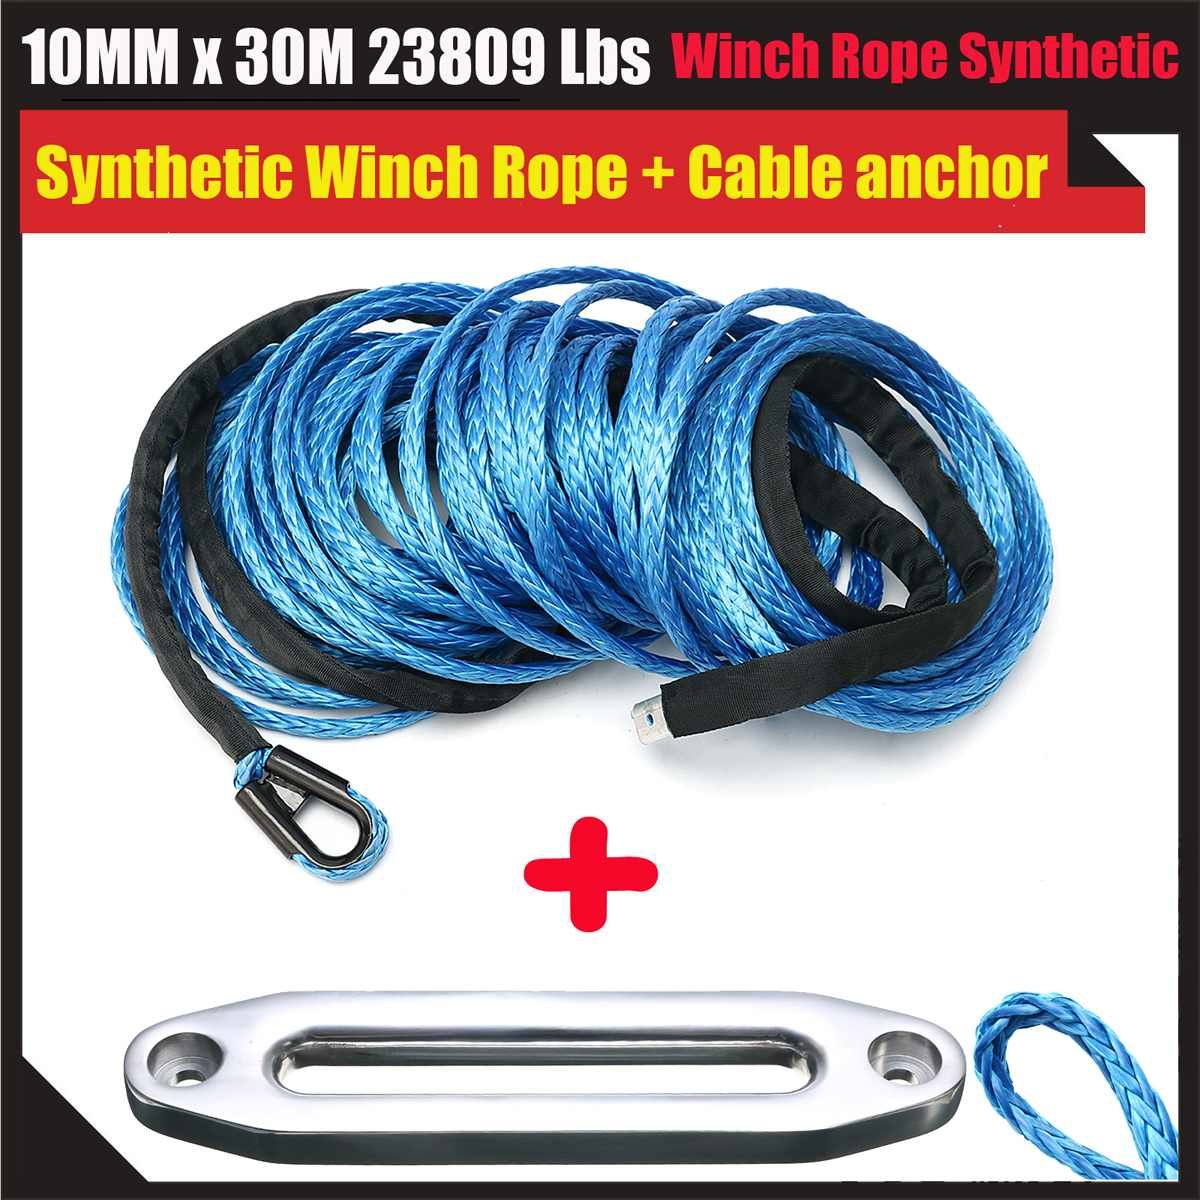 NEW 10mmX30m Black Synthetic Winch Rope with Aluminum Hawse Fairlead For ATV Winch KitNEW 10mmX30m Black Synthetic Winch Rope with Aluminum Hawse Fairlead For ATV Winch Kit